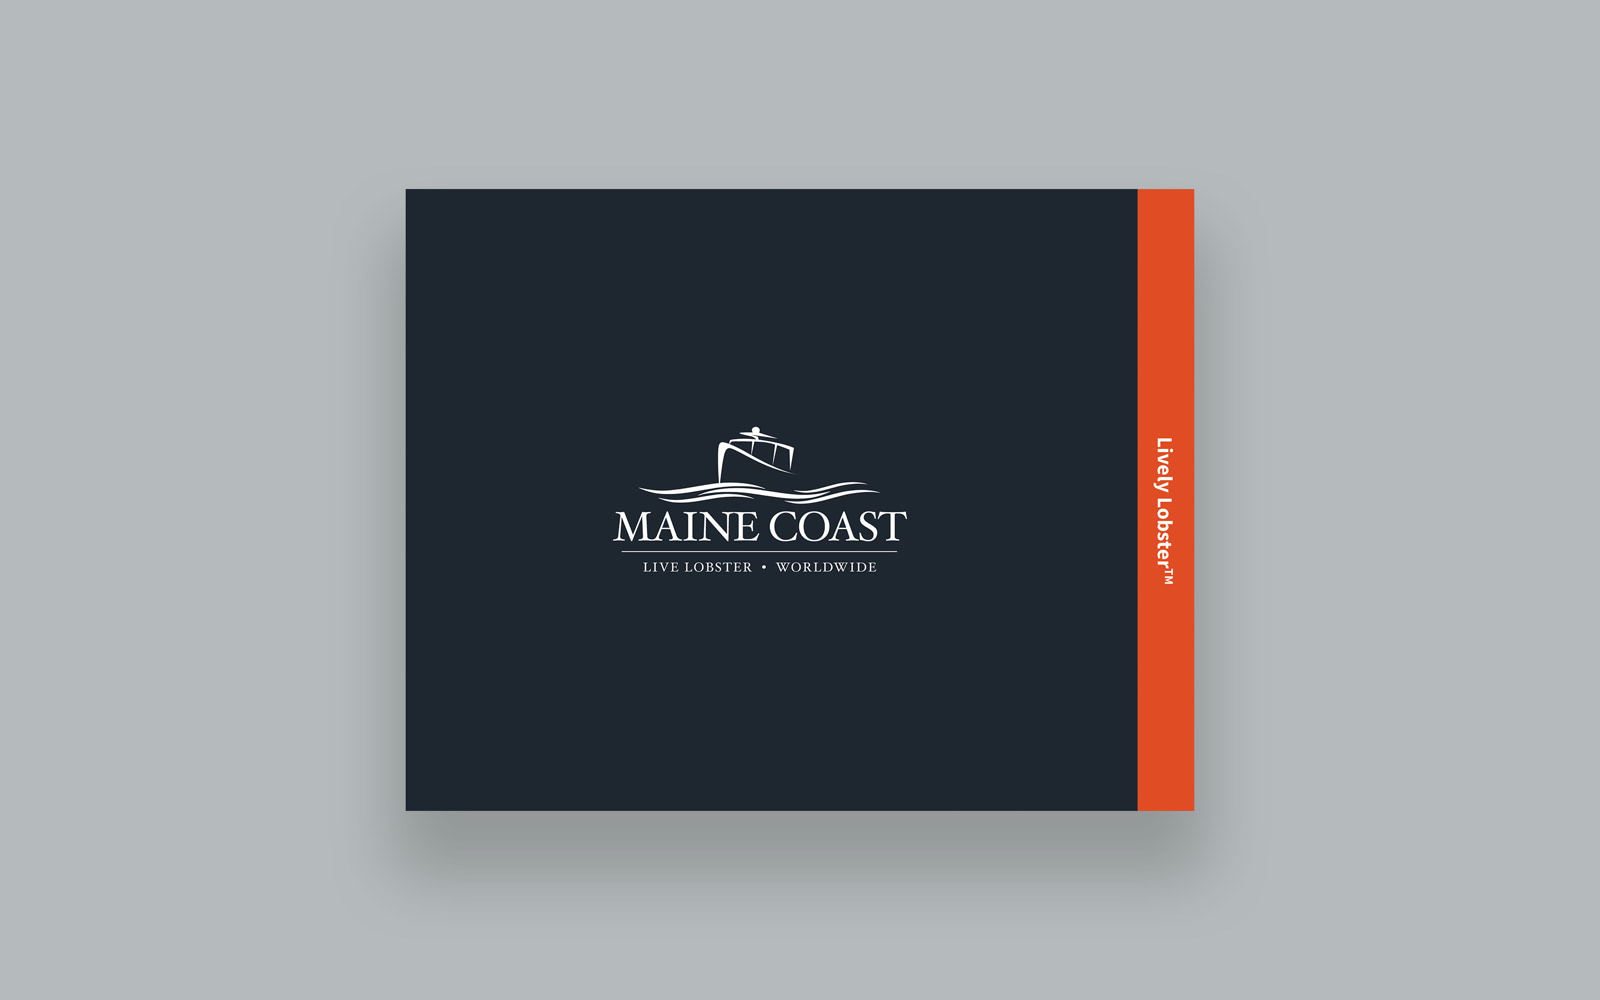 Maine Coast trifold brochure cover design with their logo in the middle and a cutaway on the side with the 'Lively Lobster' trademark